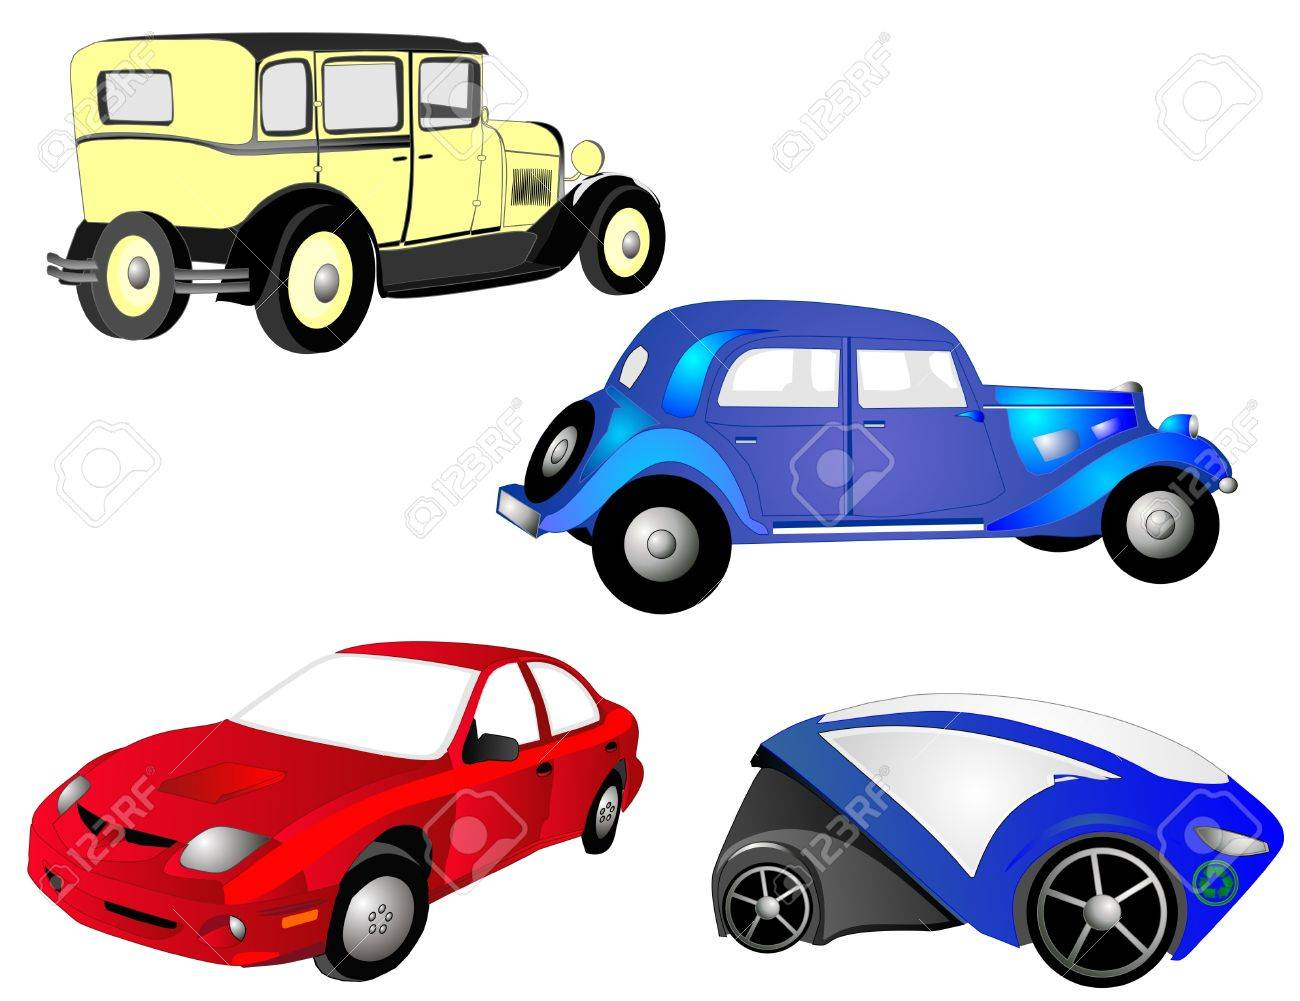 From The Old To The New, Cars, In Red, Blue And Yellow, Grow ...